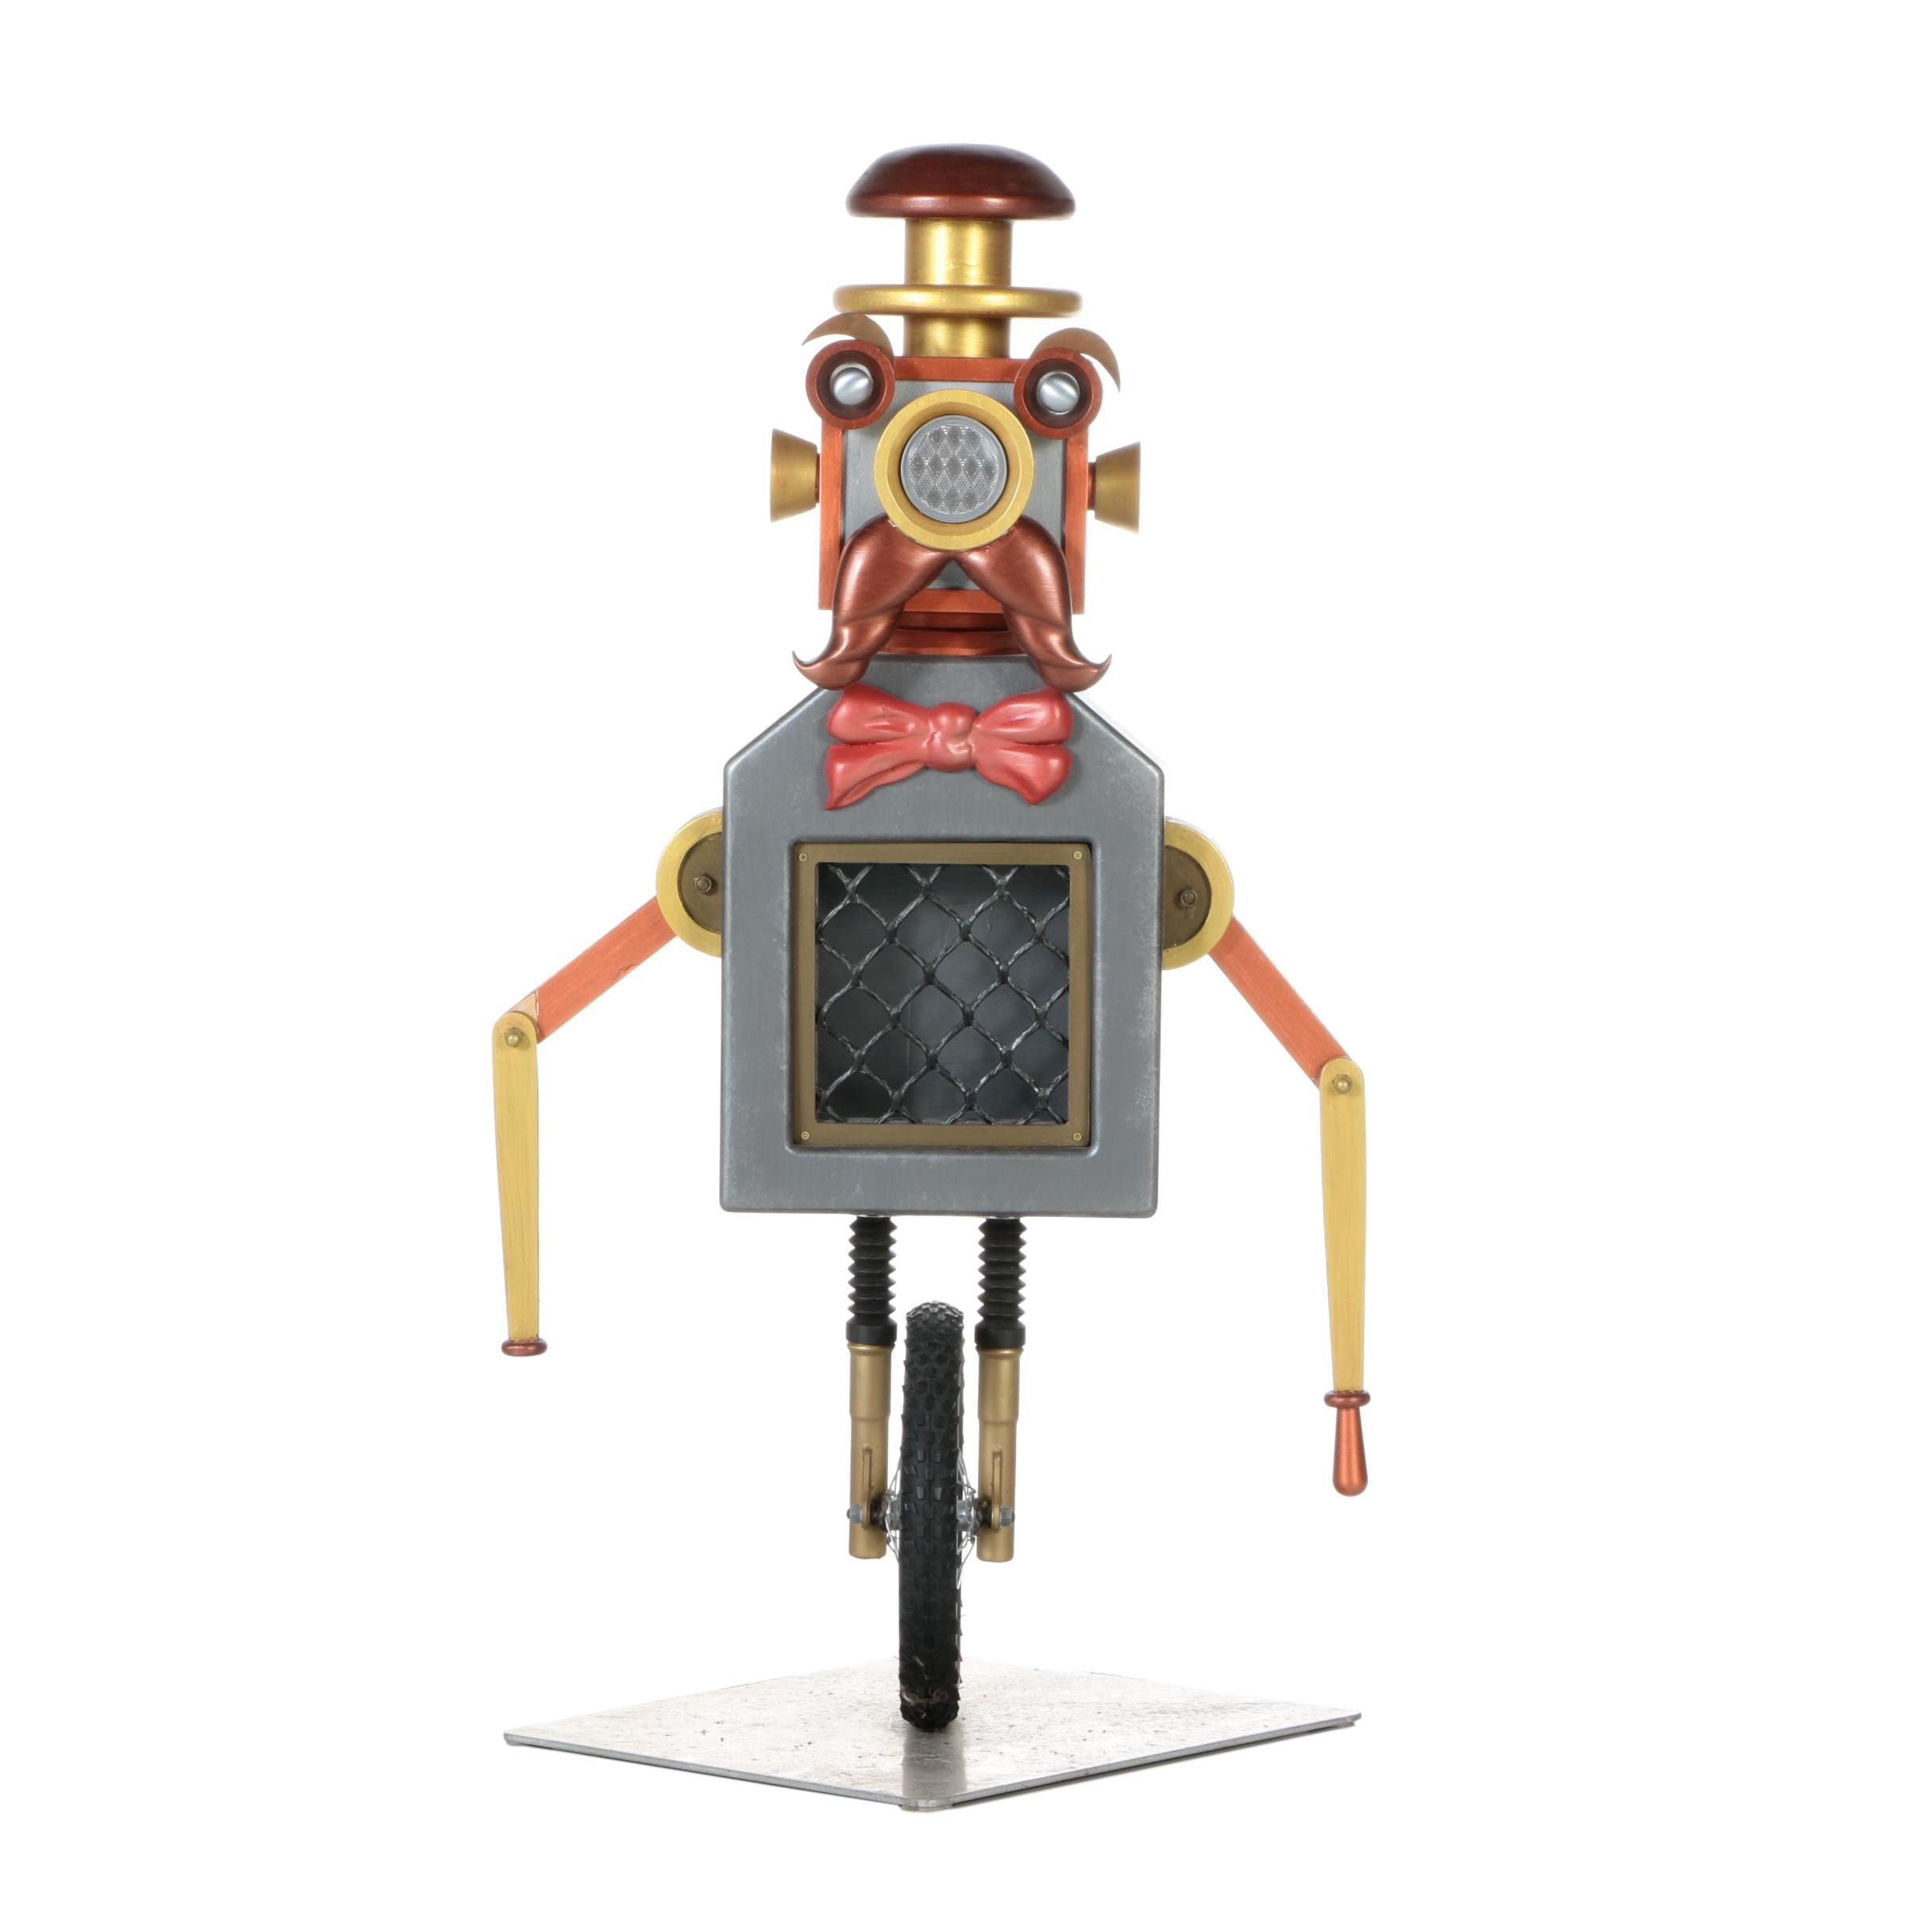 Whimsical Mixed Media Robot Sculpture